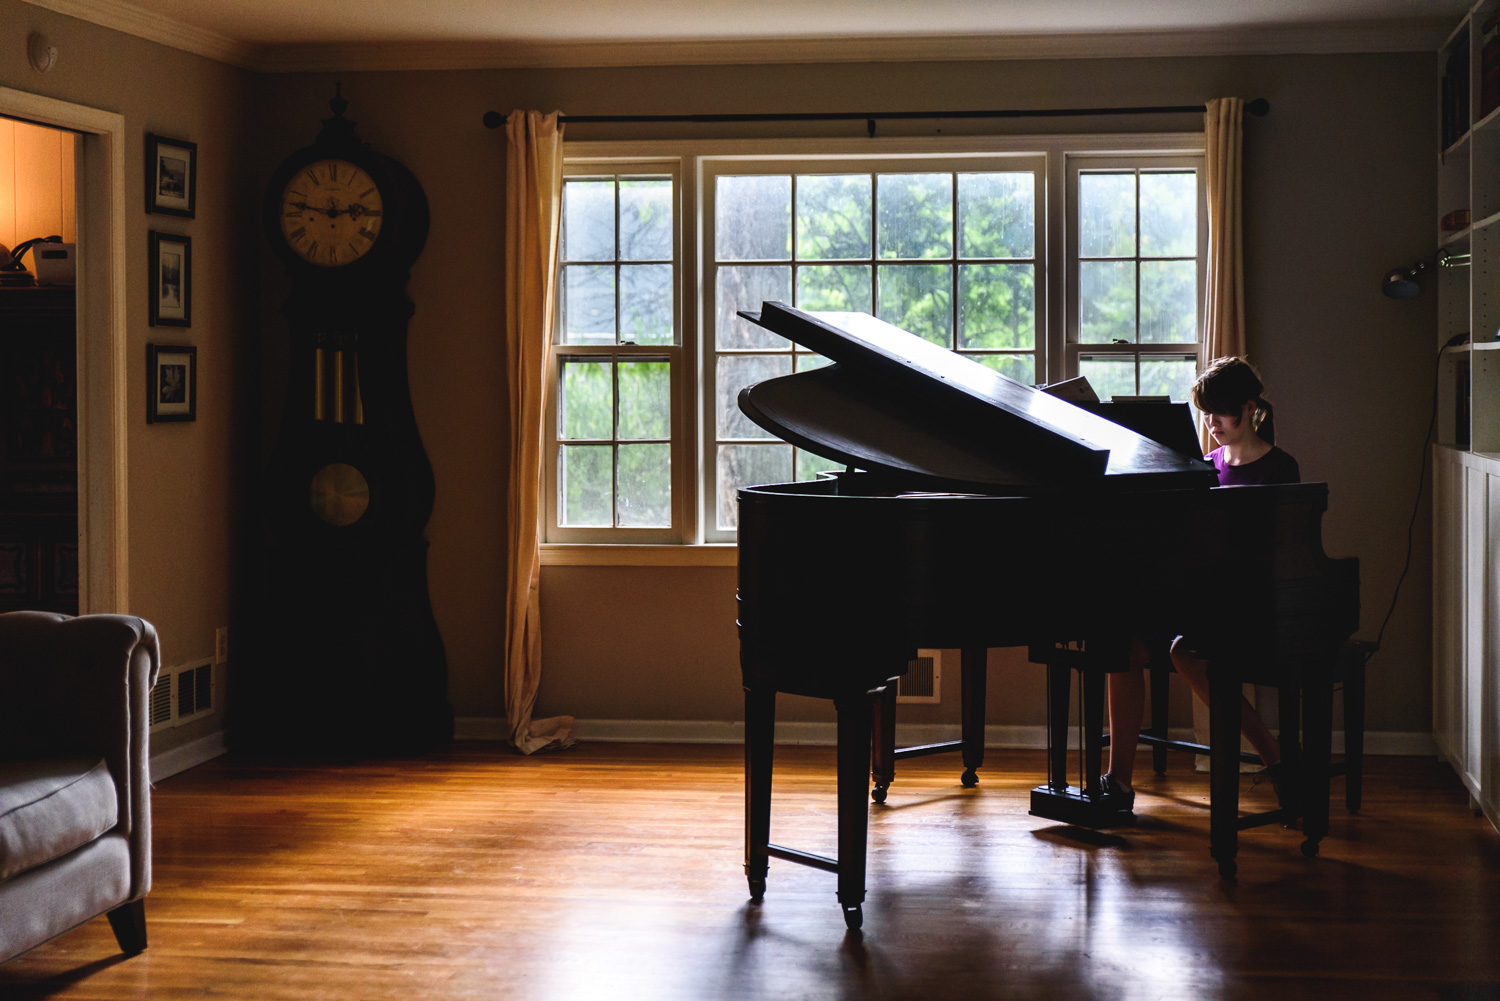 Teenage girl playing a grand piano.